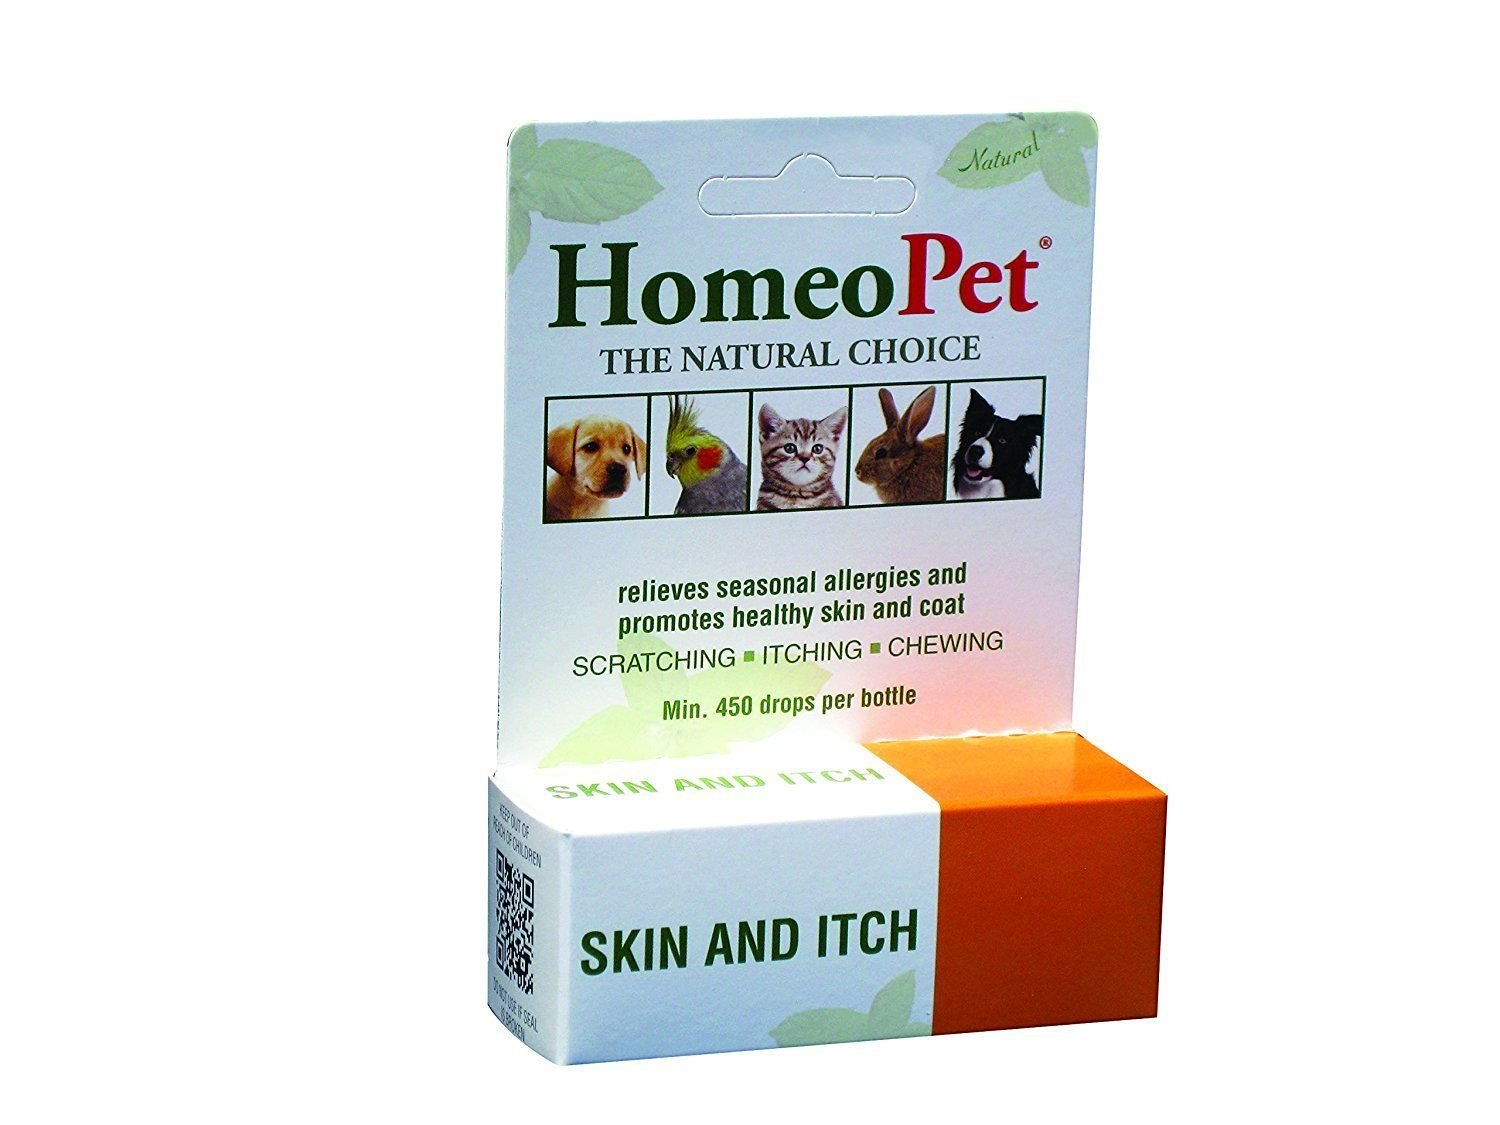 HomeoPet Skin & Itch Relief for kittens, puppies, pregnant, and nursing animals (15 mL)